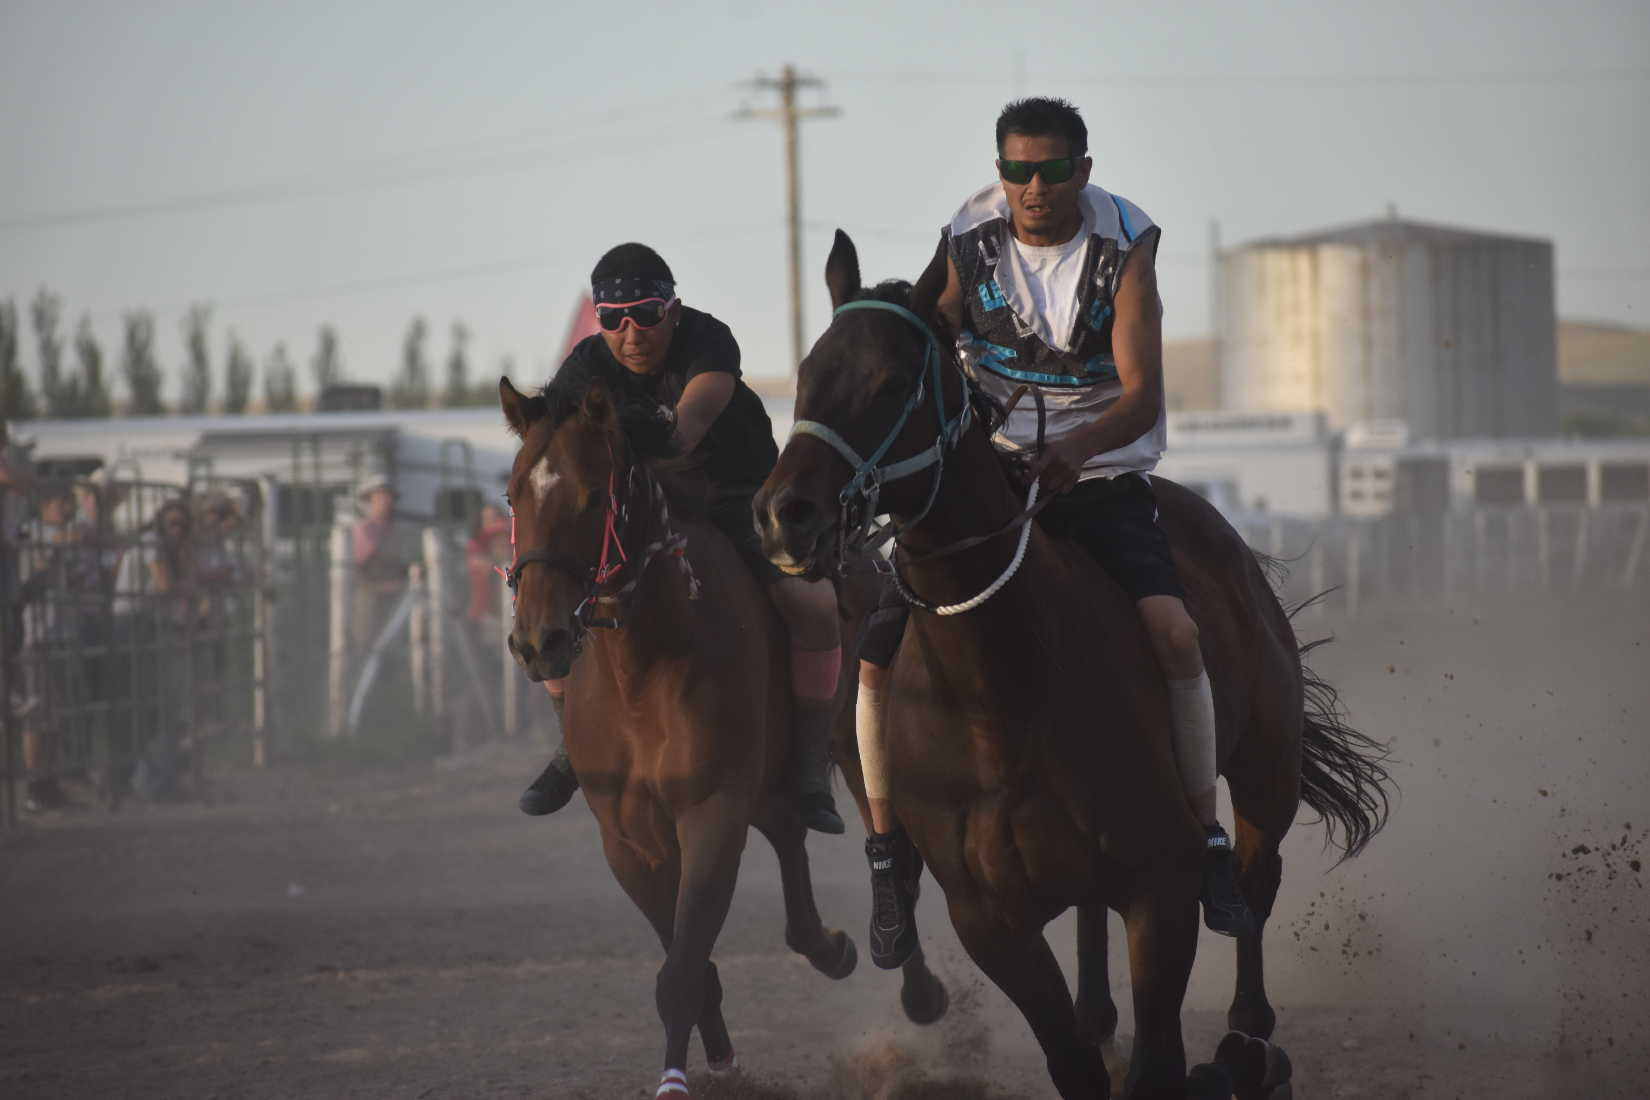 Hunting on Horseback: The Tradition Lives On